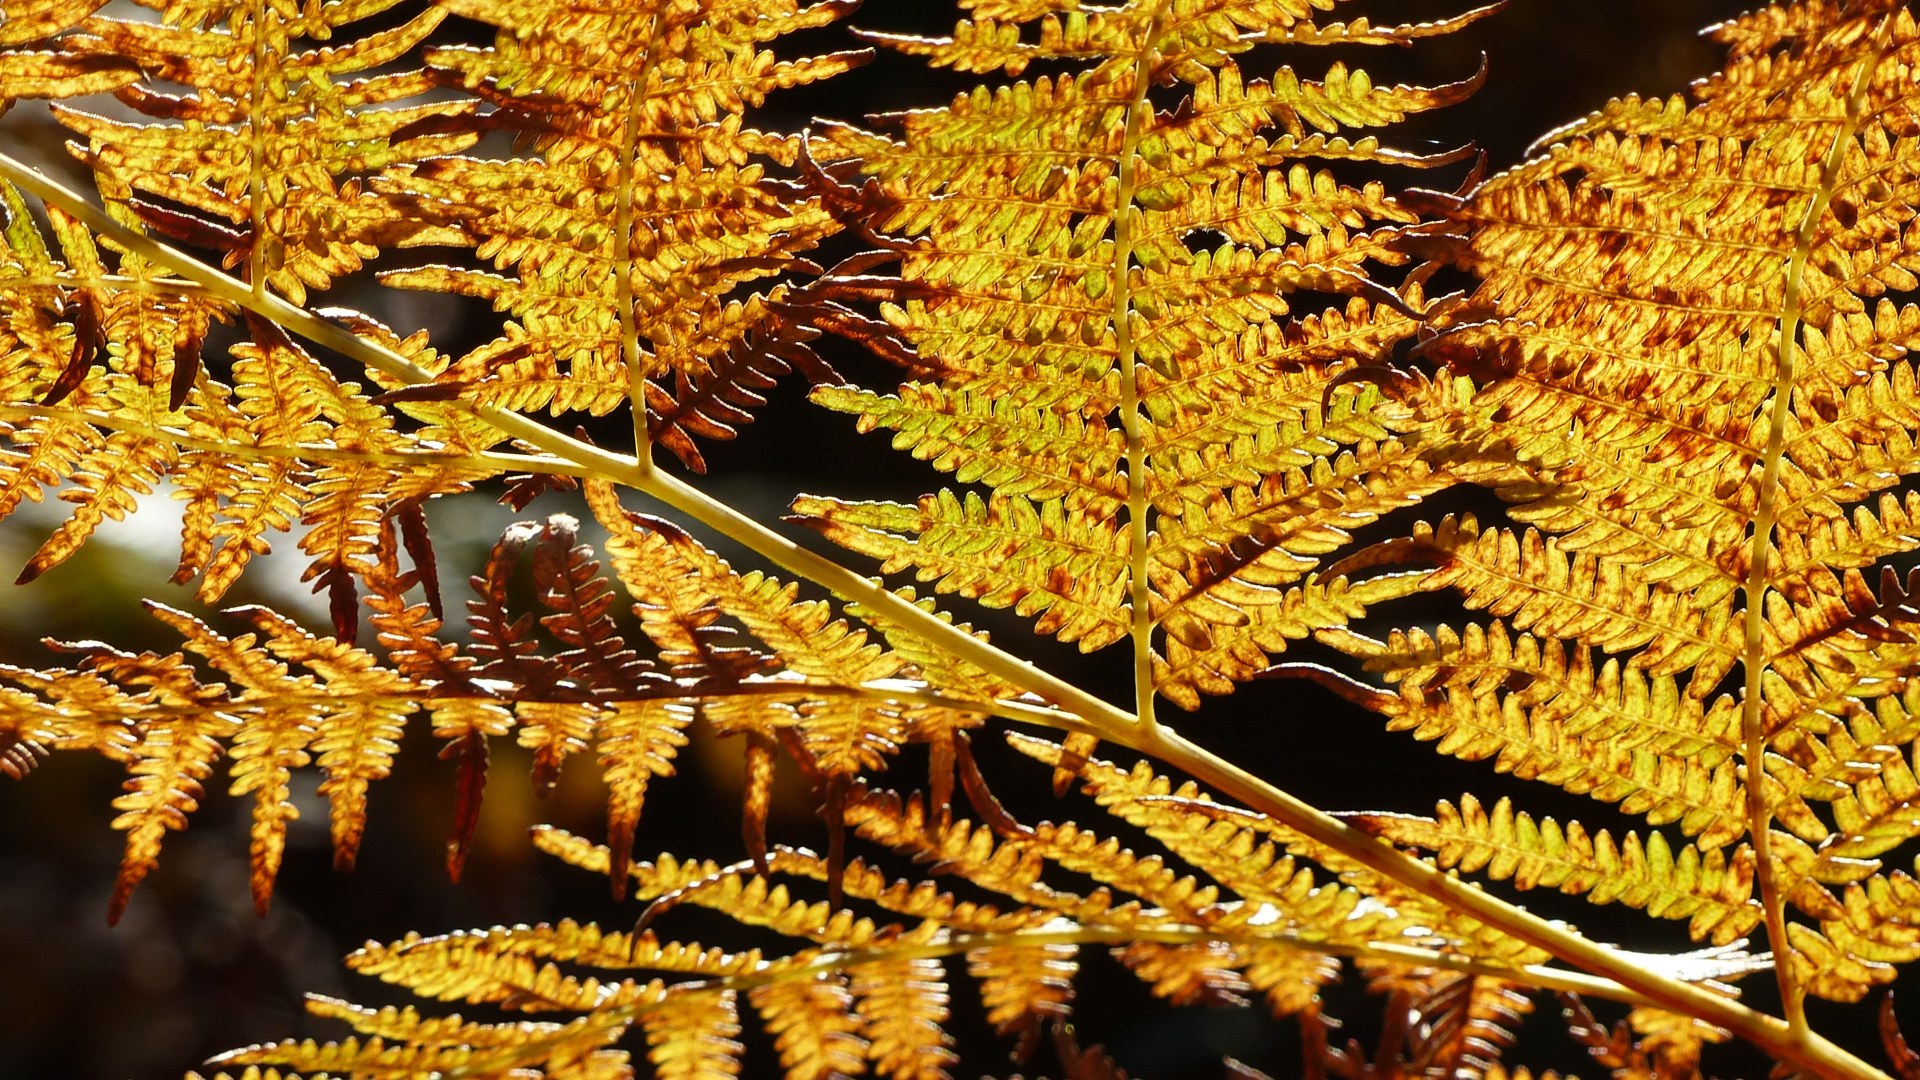 Bracken at Arne in autumn